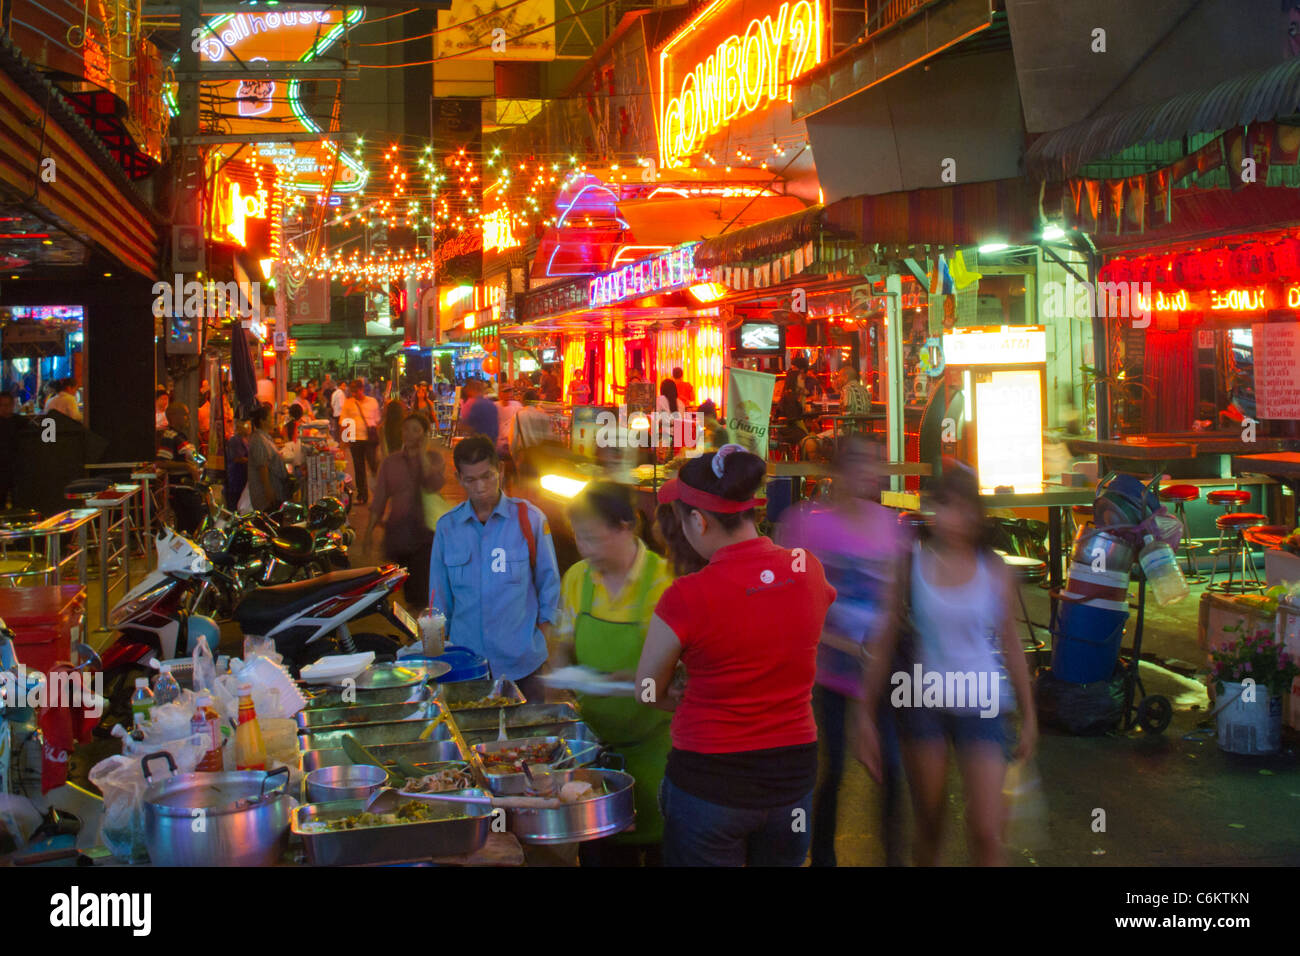 Soi Cowboy, nightlife center, bars, Bangkok, Thailand - Stock Image